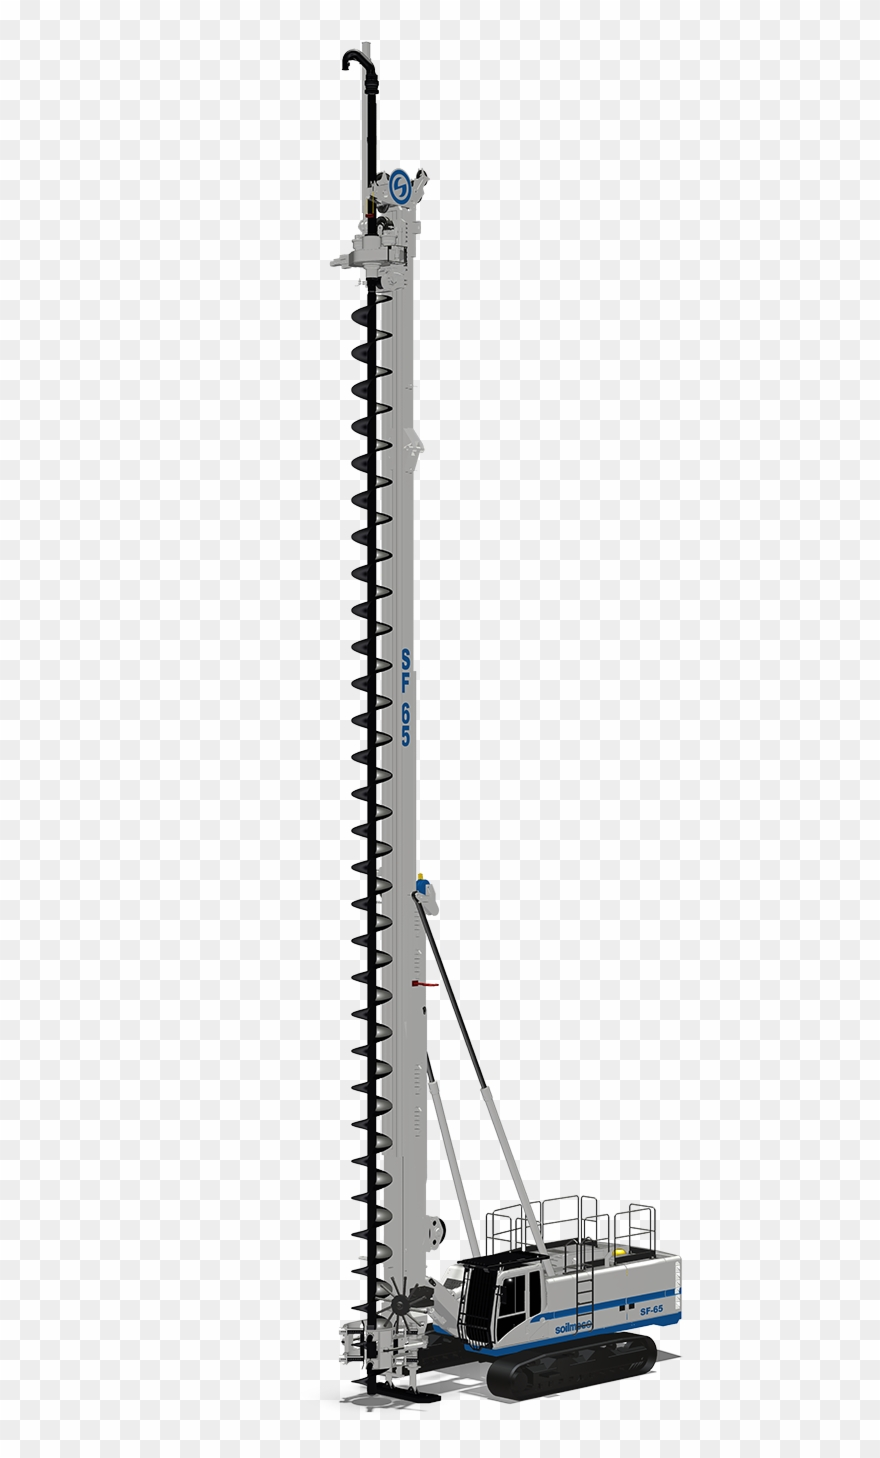 Drilling Rig Silhouette At Getdrawings - Crane Clipart